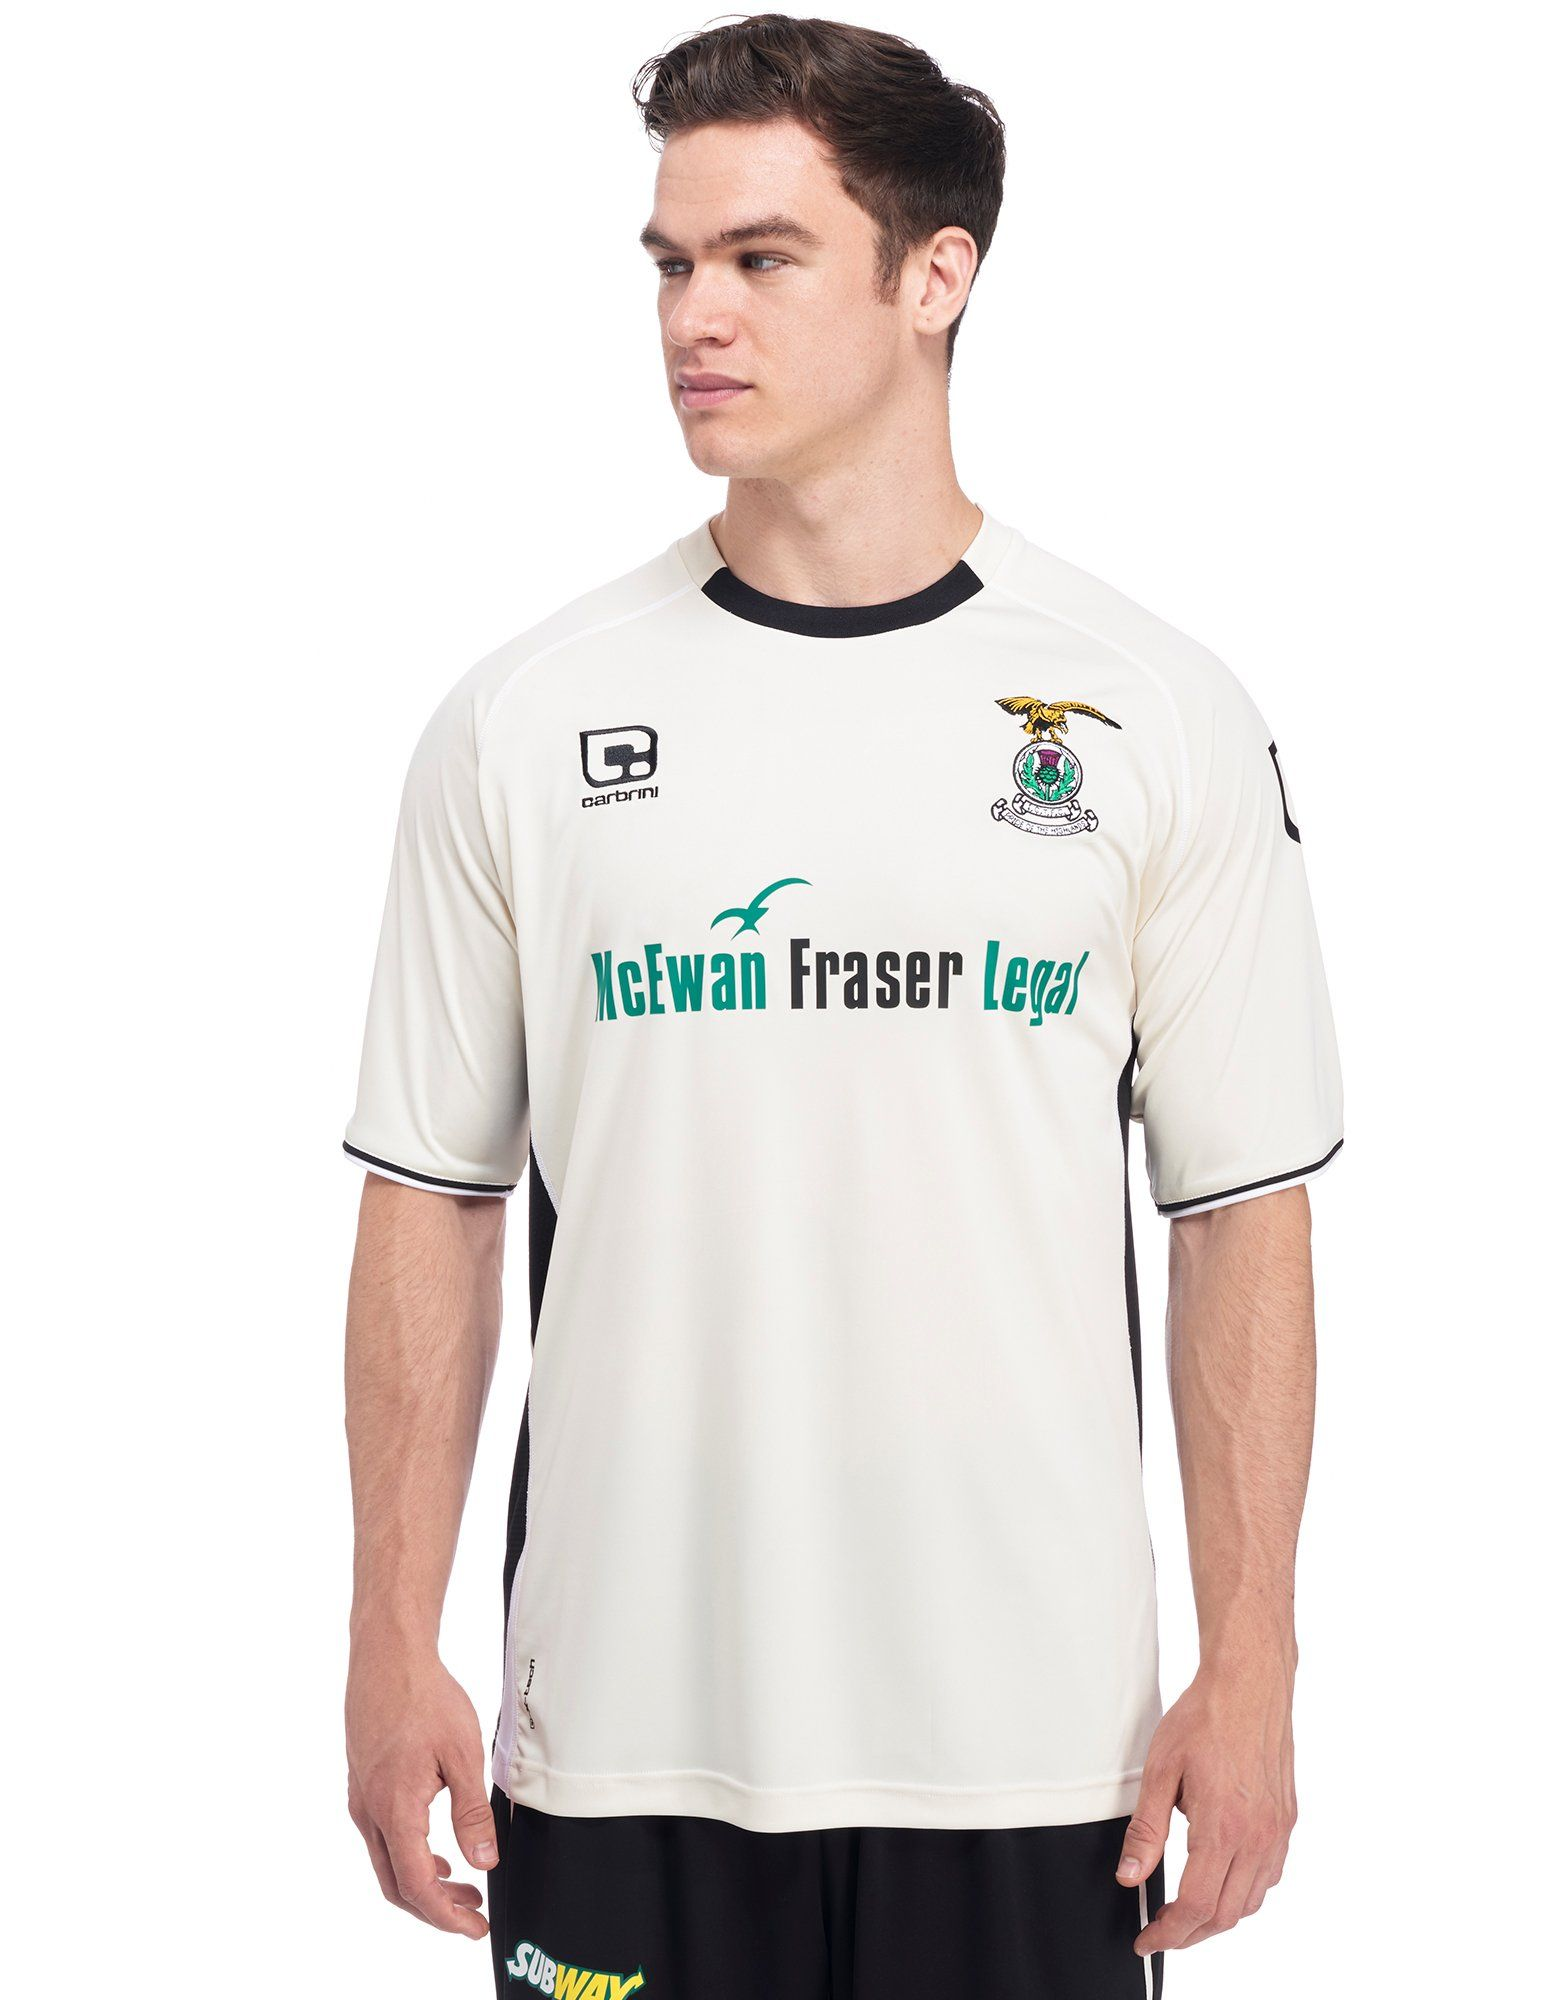 Carbrini Inverness CT 2016/17 Away Shirt